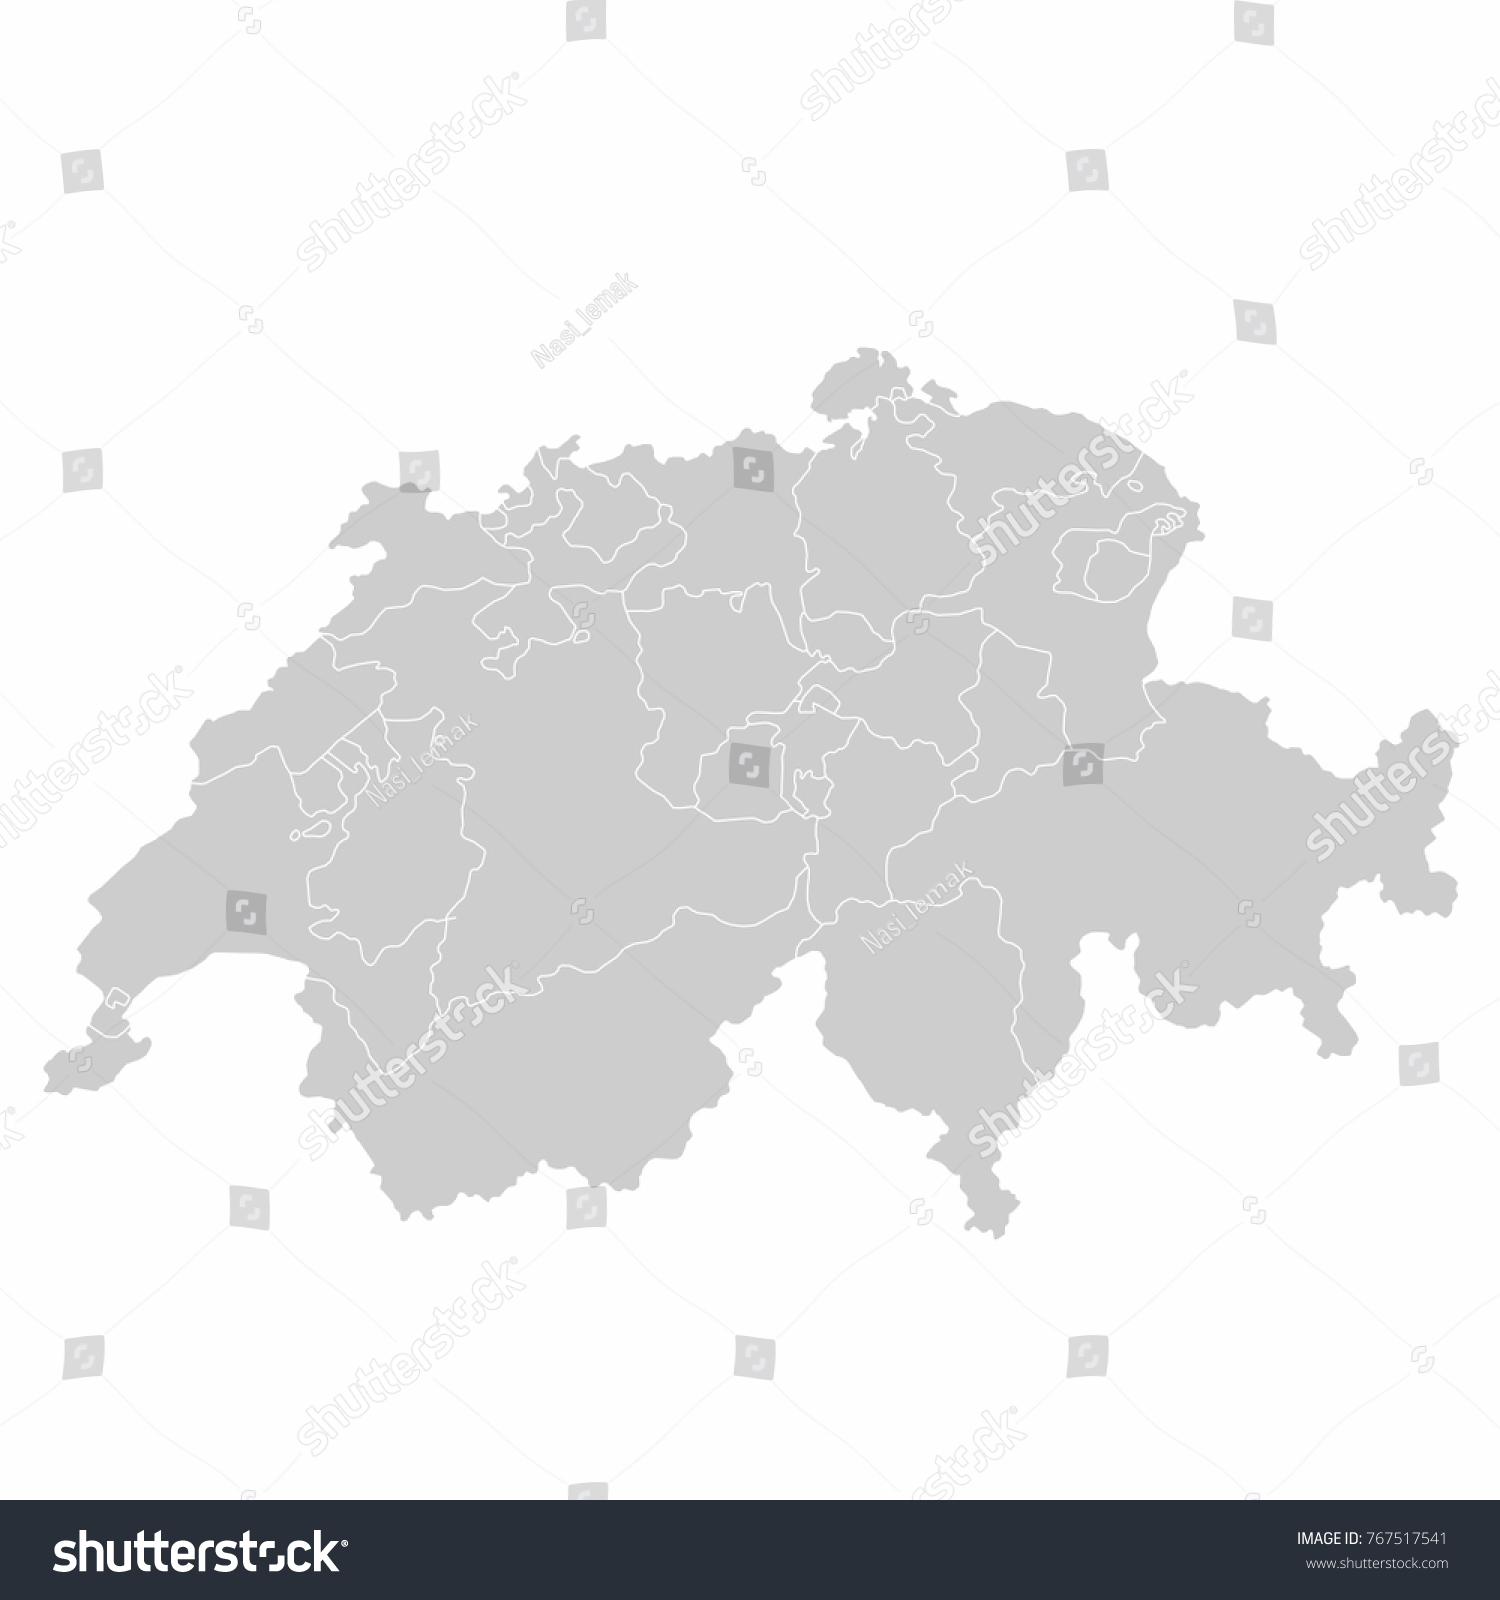 Switzerland world map country outline graphic stock photo photo switzerland world map country outline in graphic design concept gumiabroncs Images